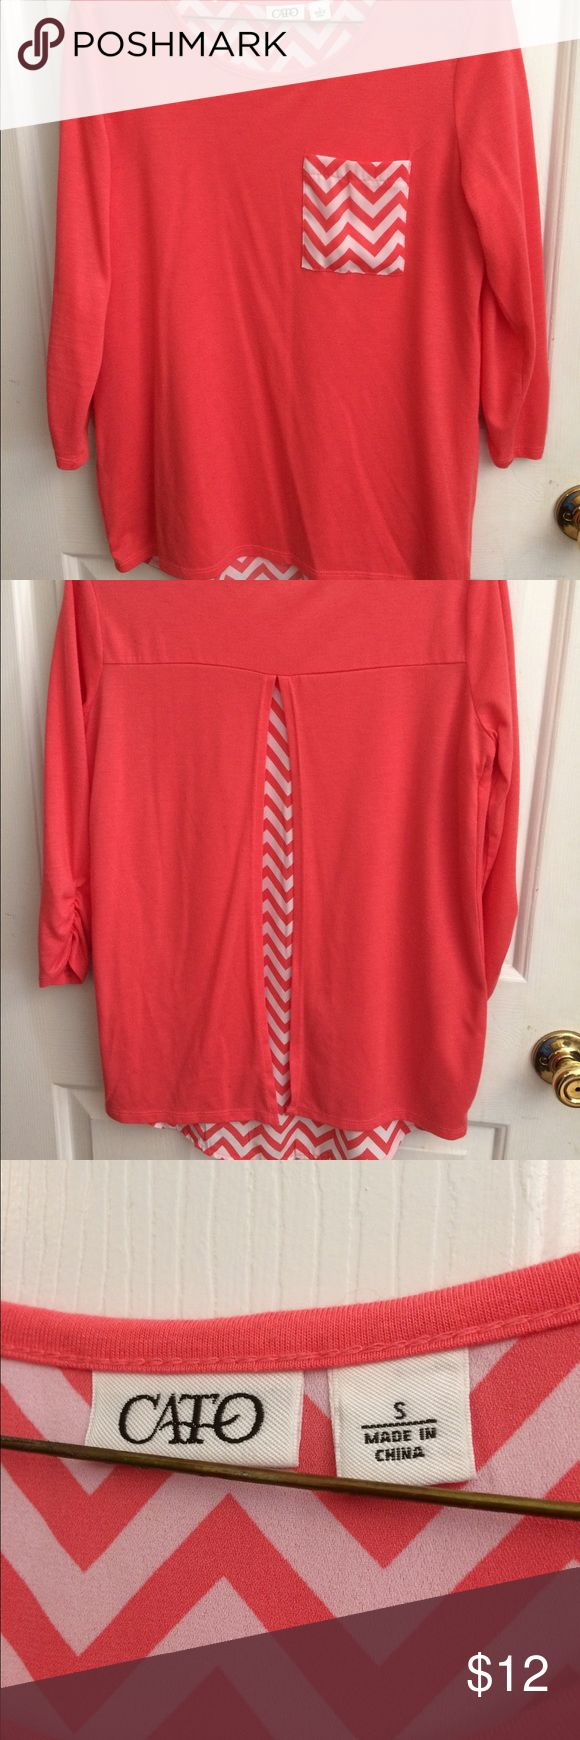 Chevron Blouse Pink chevron blouse from Cato size S Cato Tops Blouses